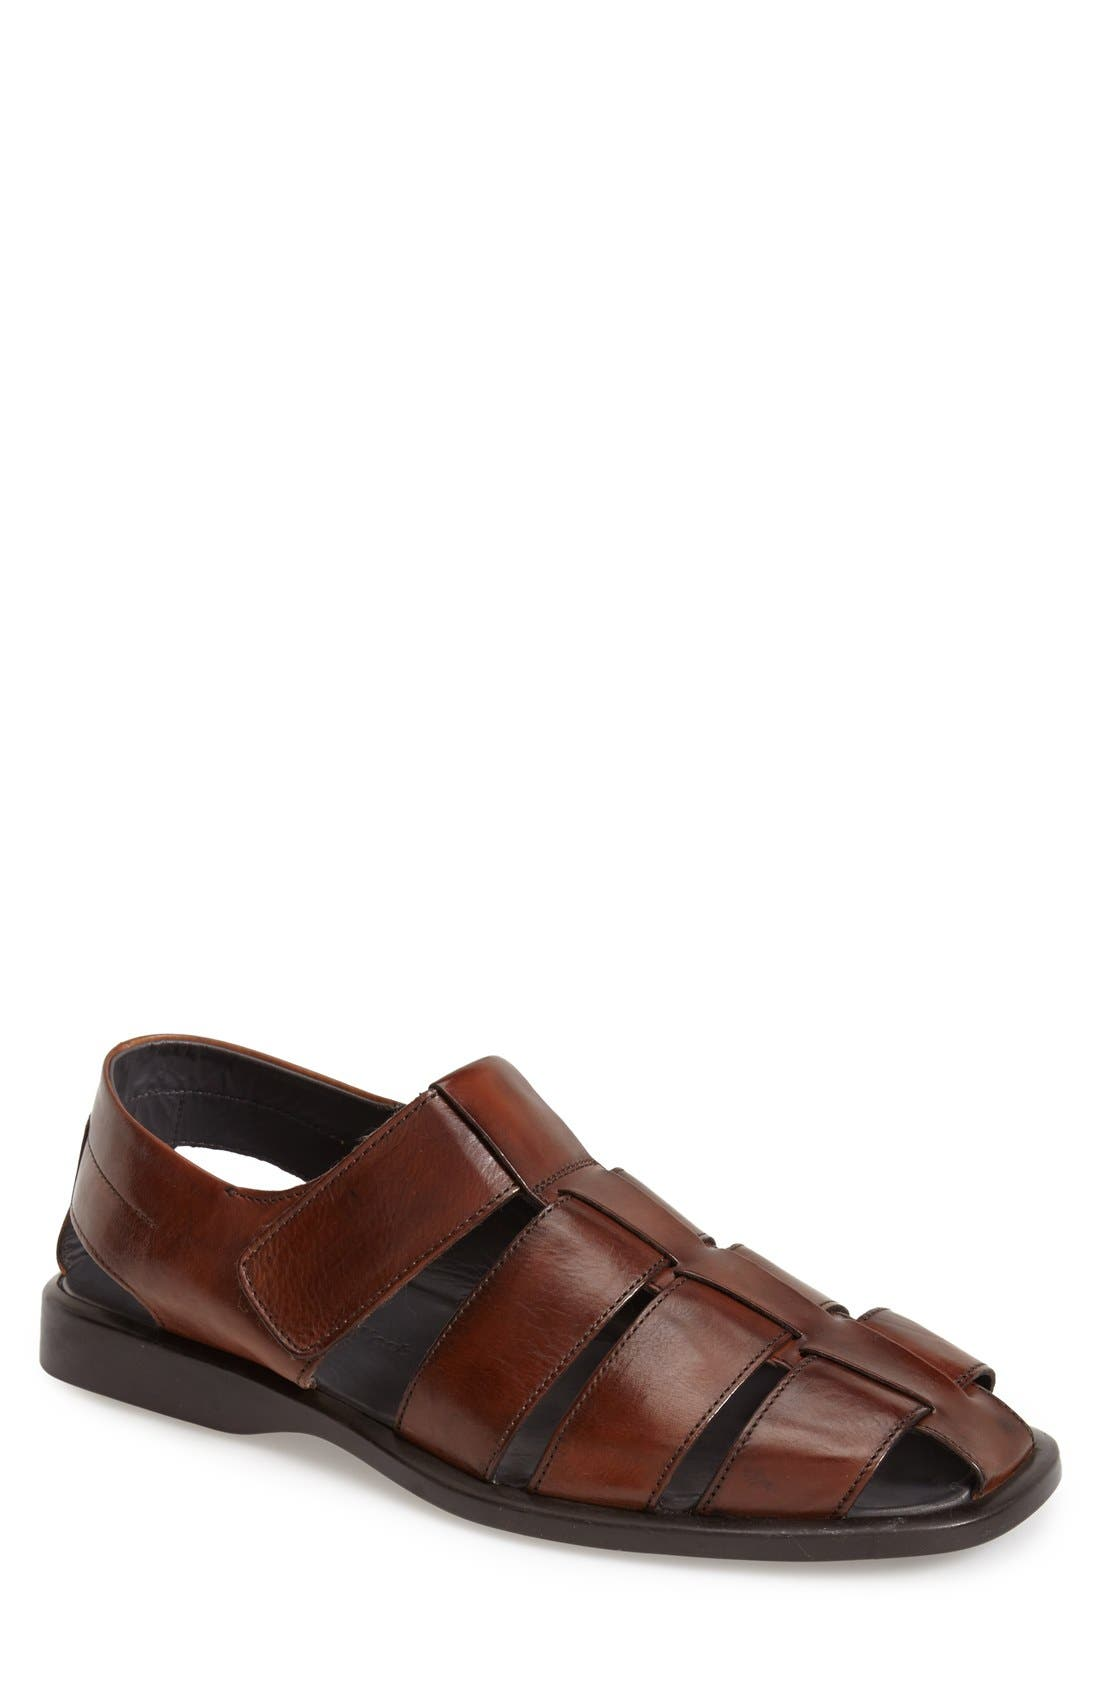 Alternate Image 1 Selected - To Boot New York 'Barbados' Fisherman Sandal (Men)